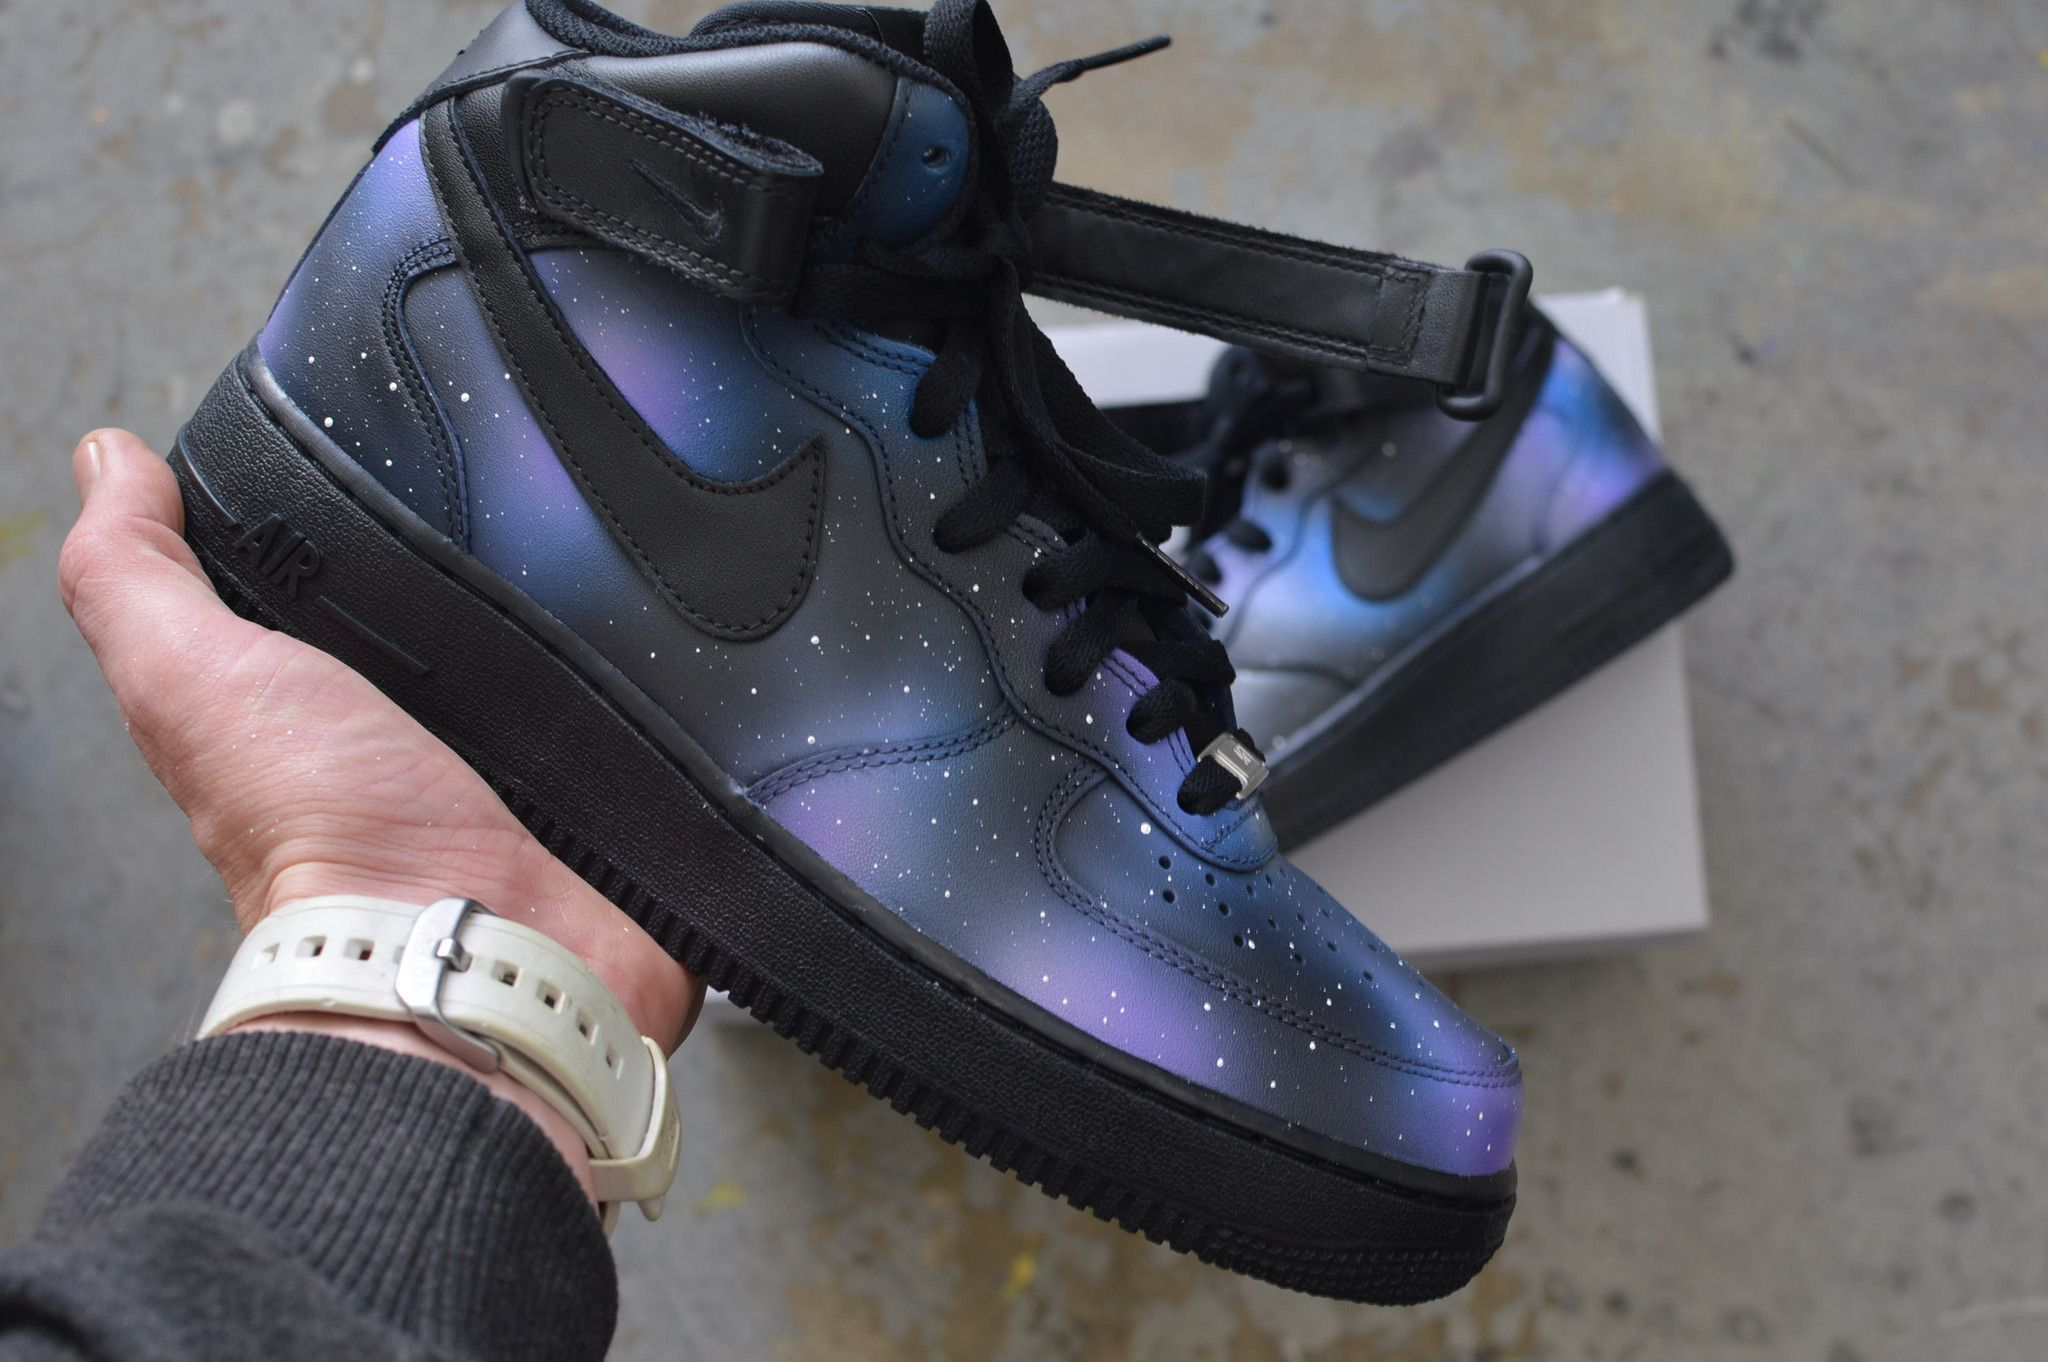 finest selection c37a1 2563d These Nike AF1 Mids have the Galaxy Design. This order is customizable as I  can paint this one-of-a-kind, original design on any Nikes.